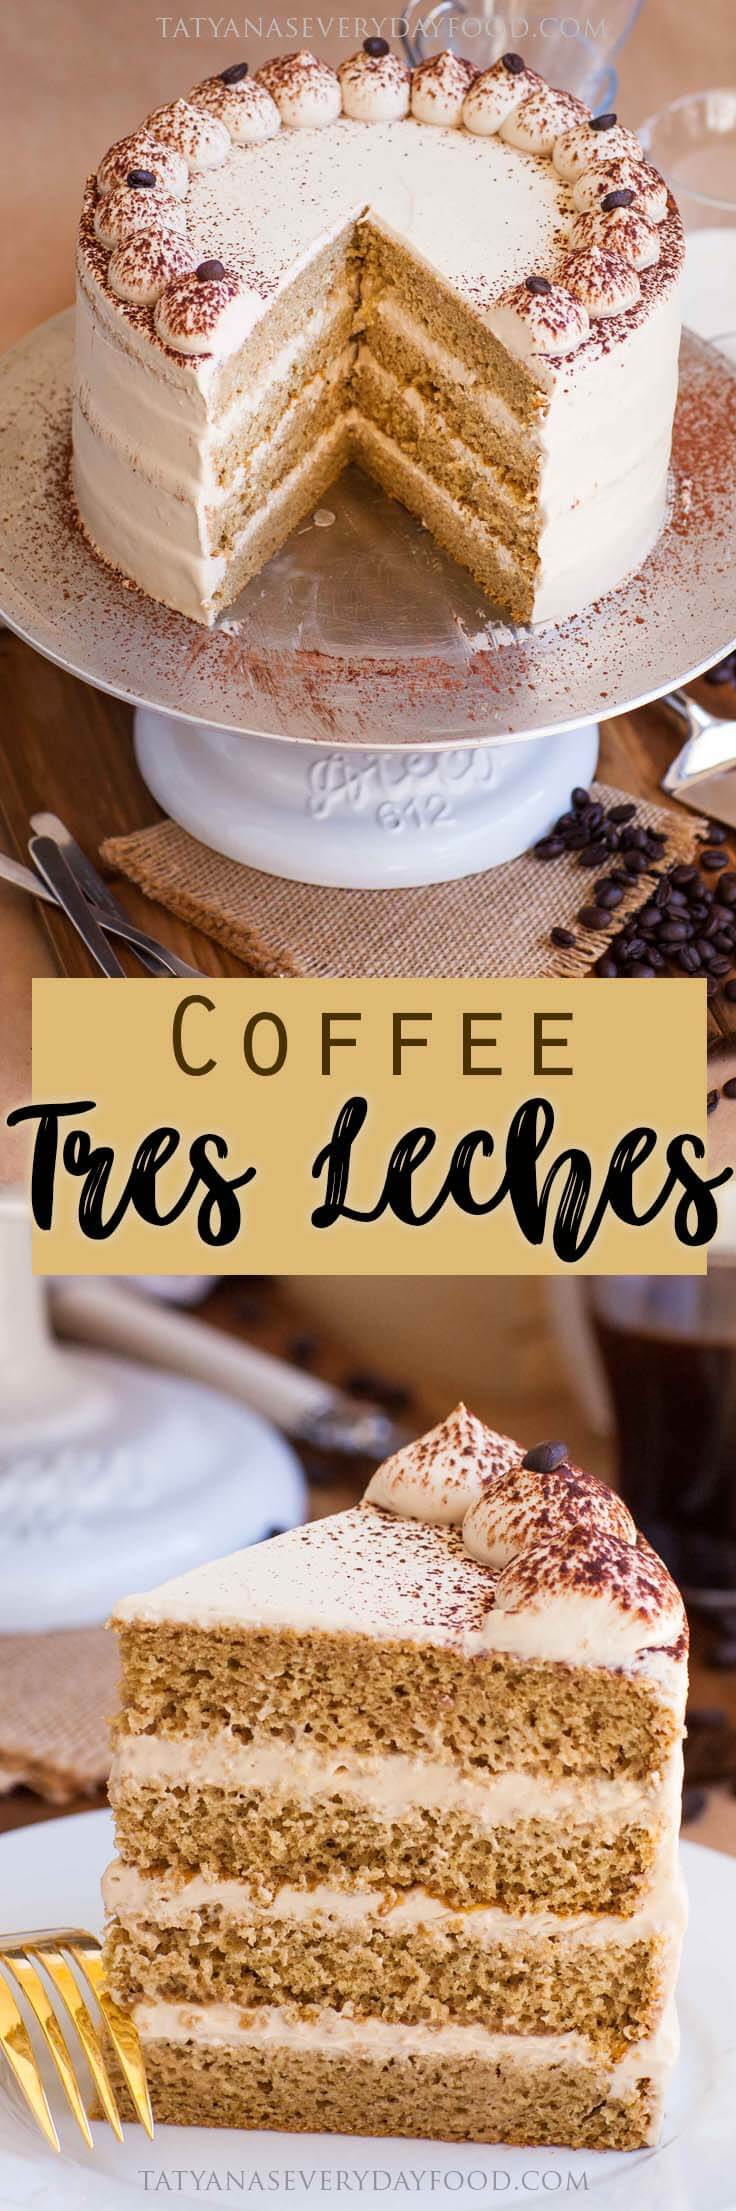 Coffee Tres Leches Cake Recipe with video